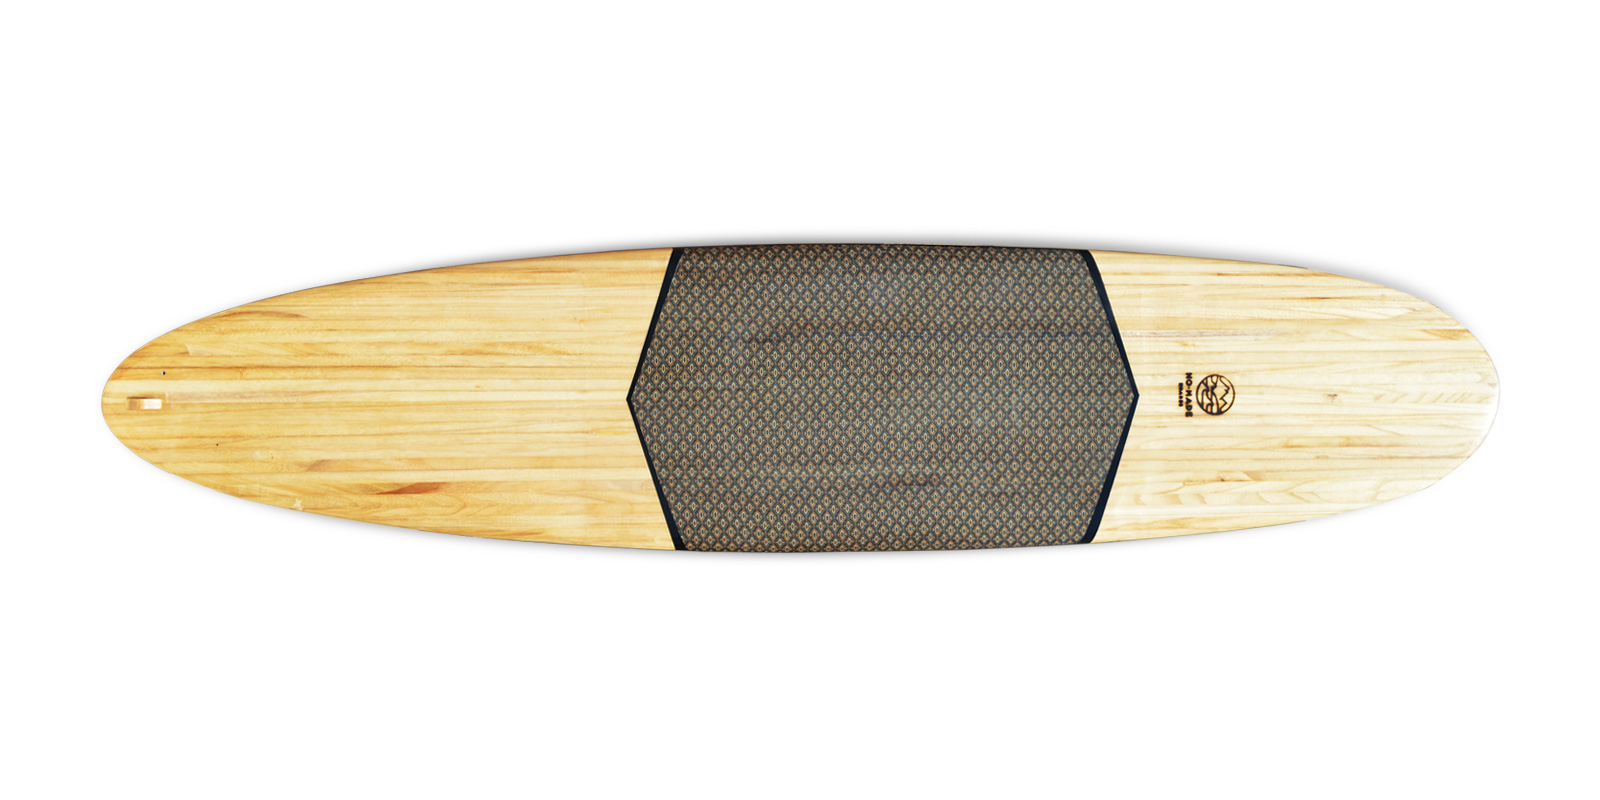 wooden surfbaord